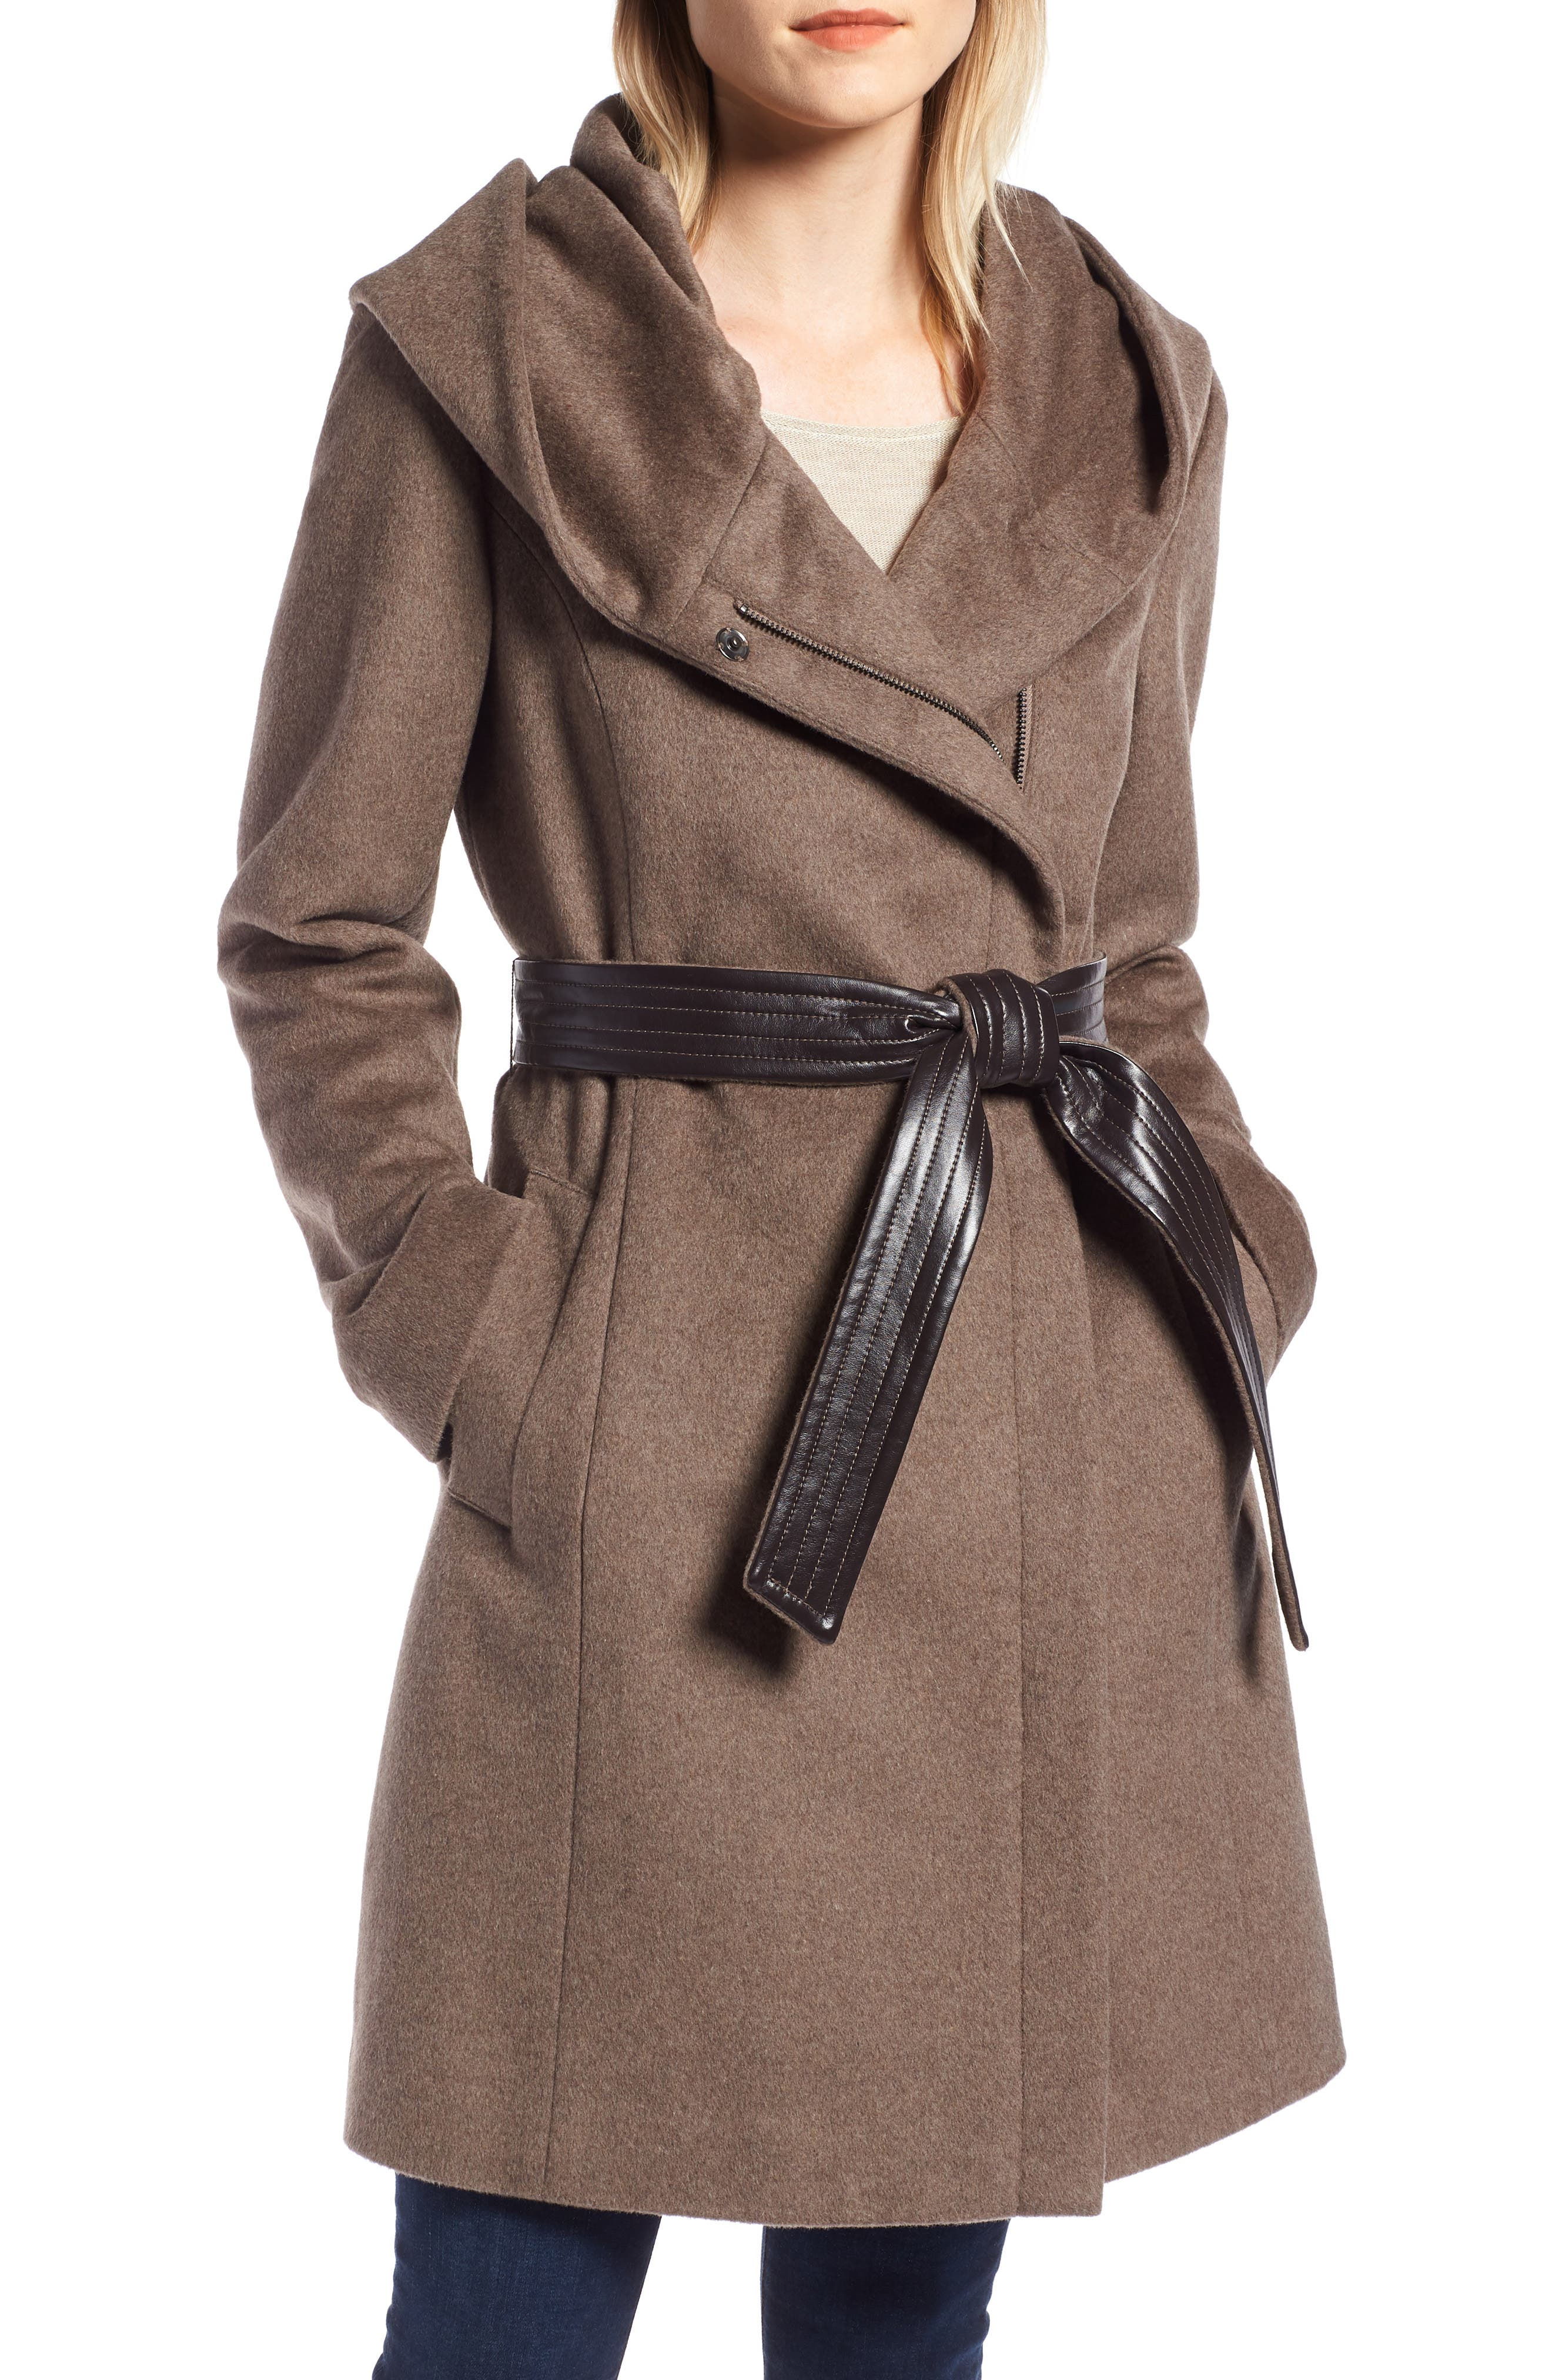 Cole Haan Belted Asymmetrical Wool Coat,                             Main thumbnail 1, color,                             PORTOBELLO